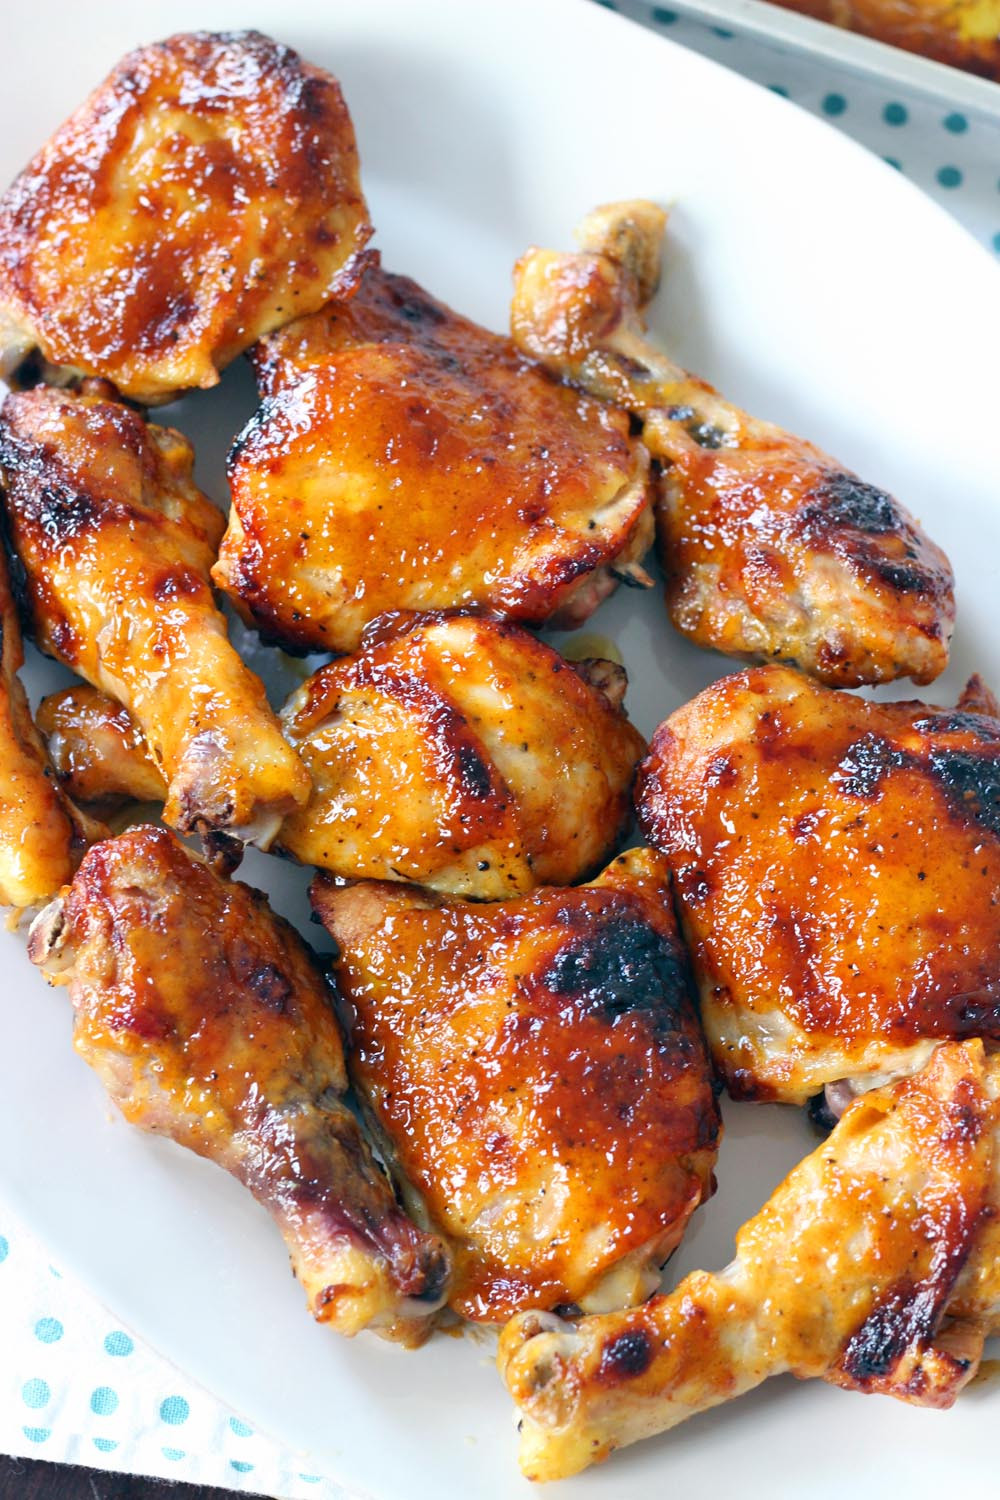 Oven Baked Chicken Recipes  Two Ingre nt Crispy Oven Baked BBQ Chicken